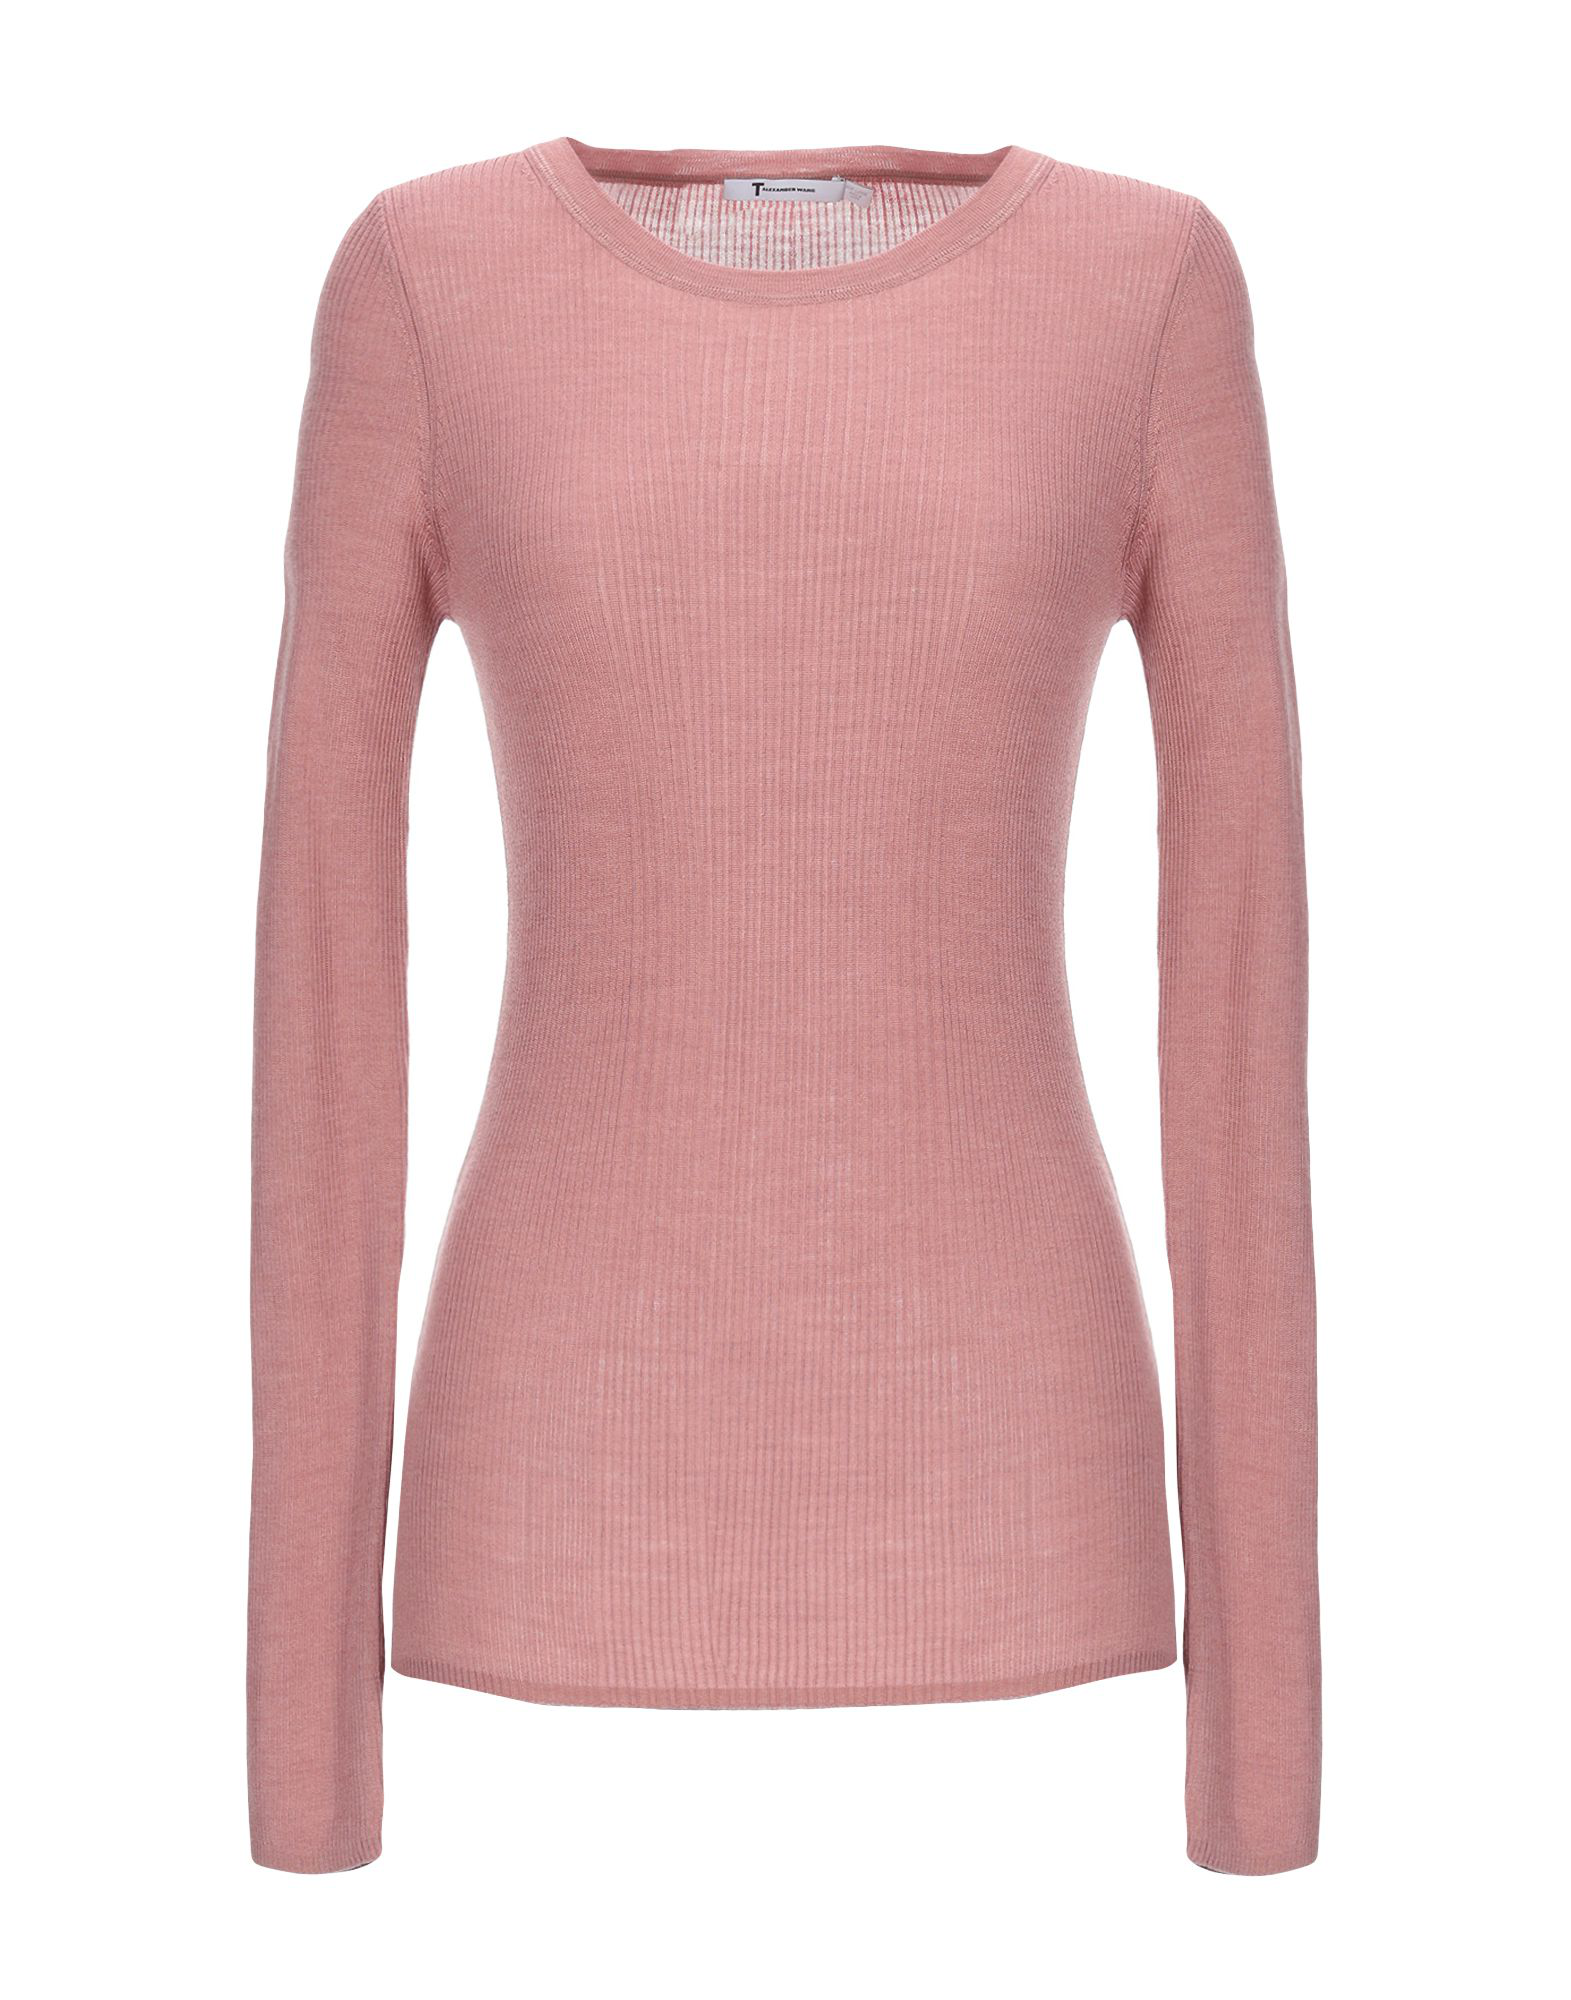 a59dcd5936 T By Alexander Wang Sweaters In Pale Pink